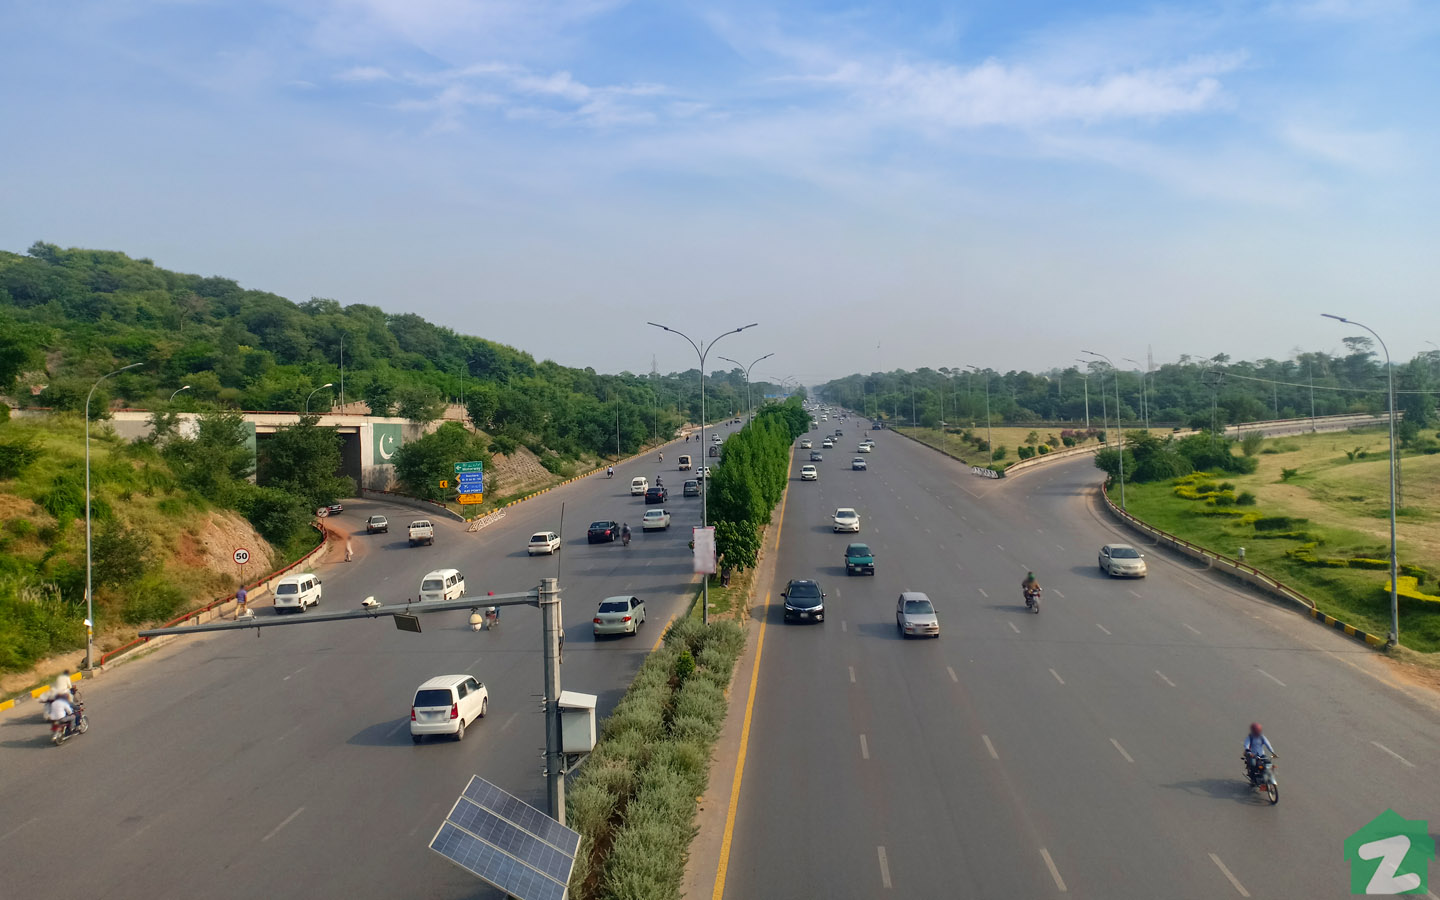 Jinnah Avenue Islamabad is an important commute route